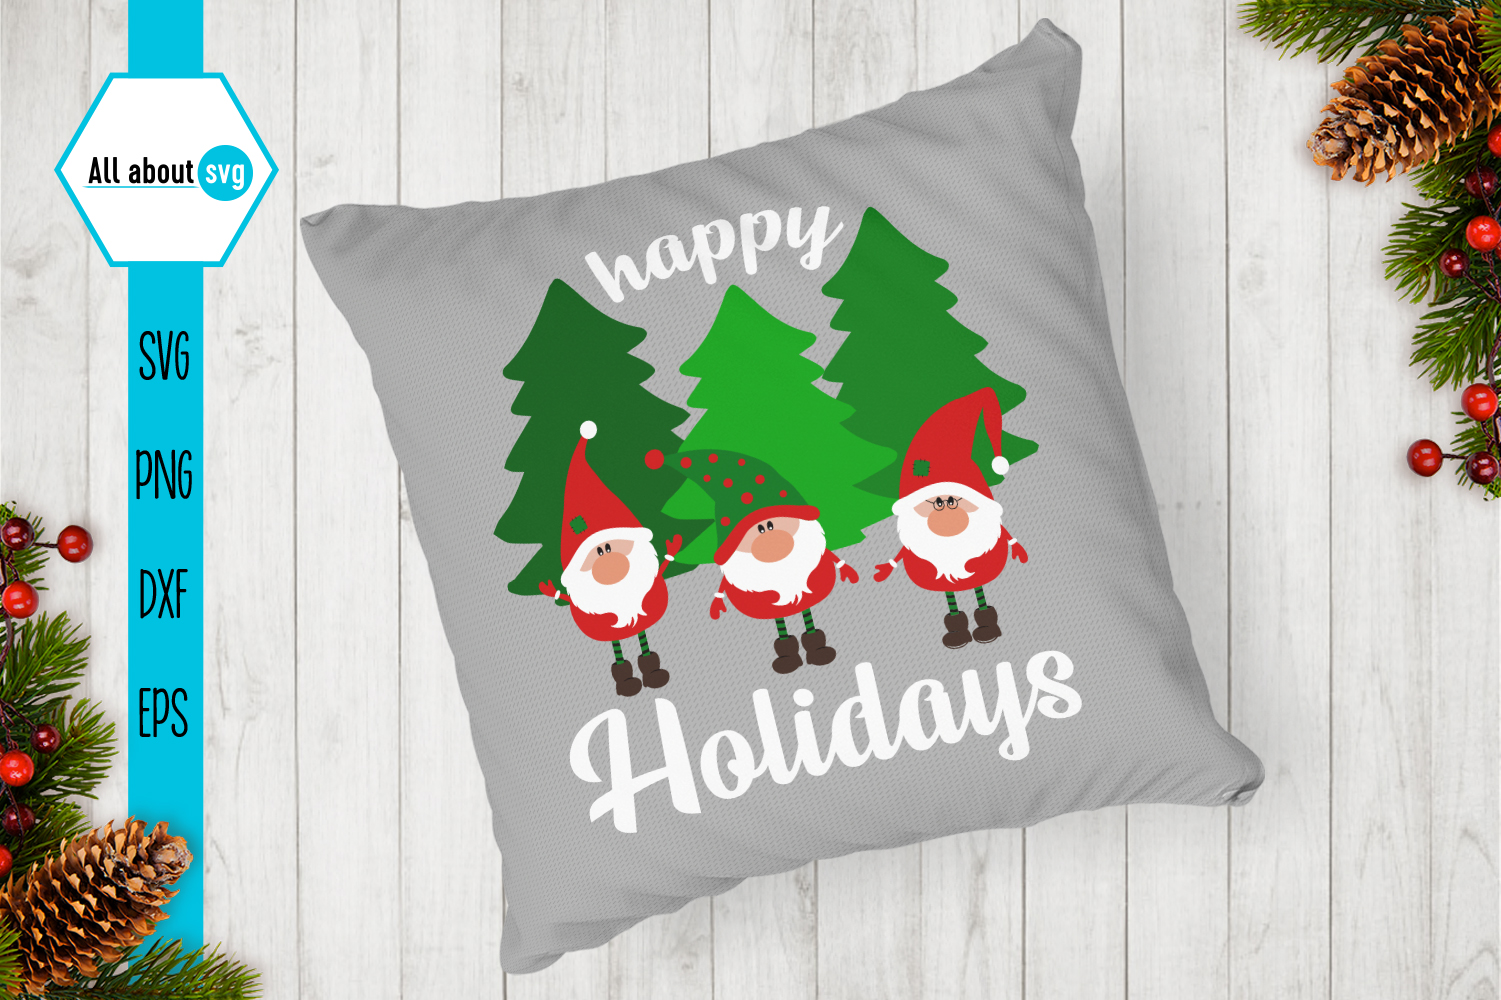 Happy Holidays Svg, Gnome Svg example image 4